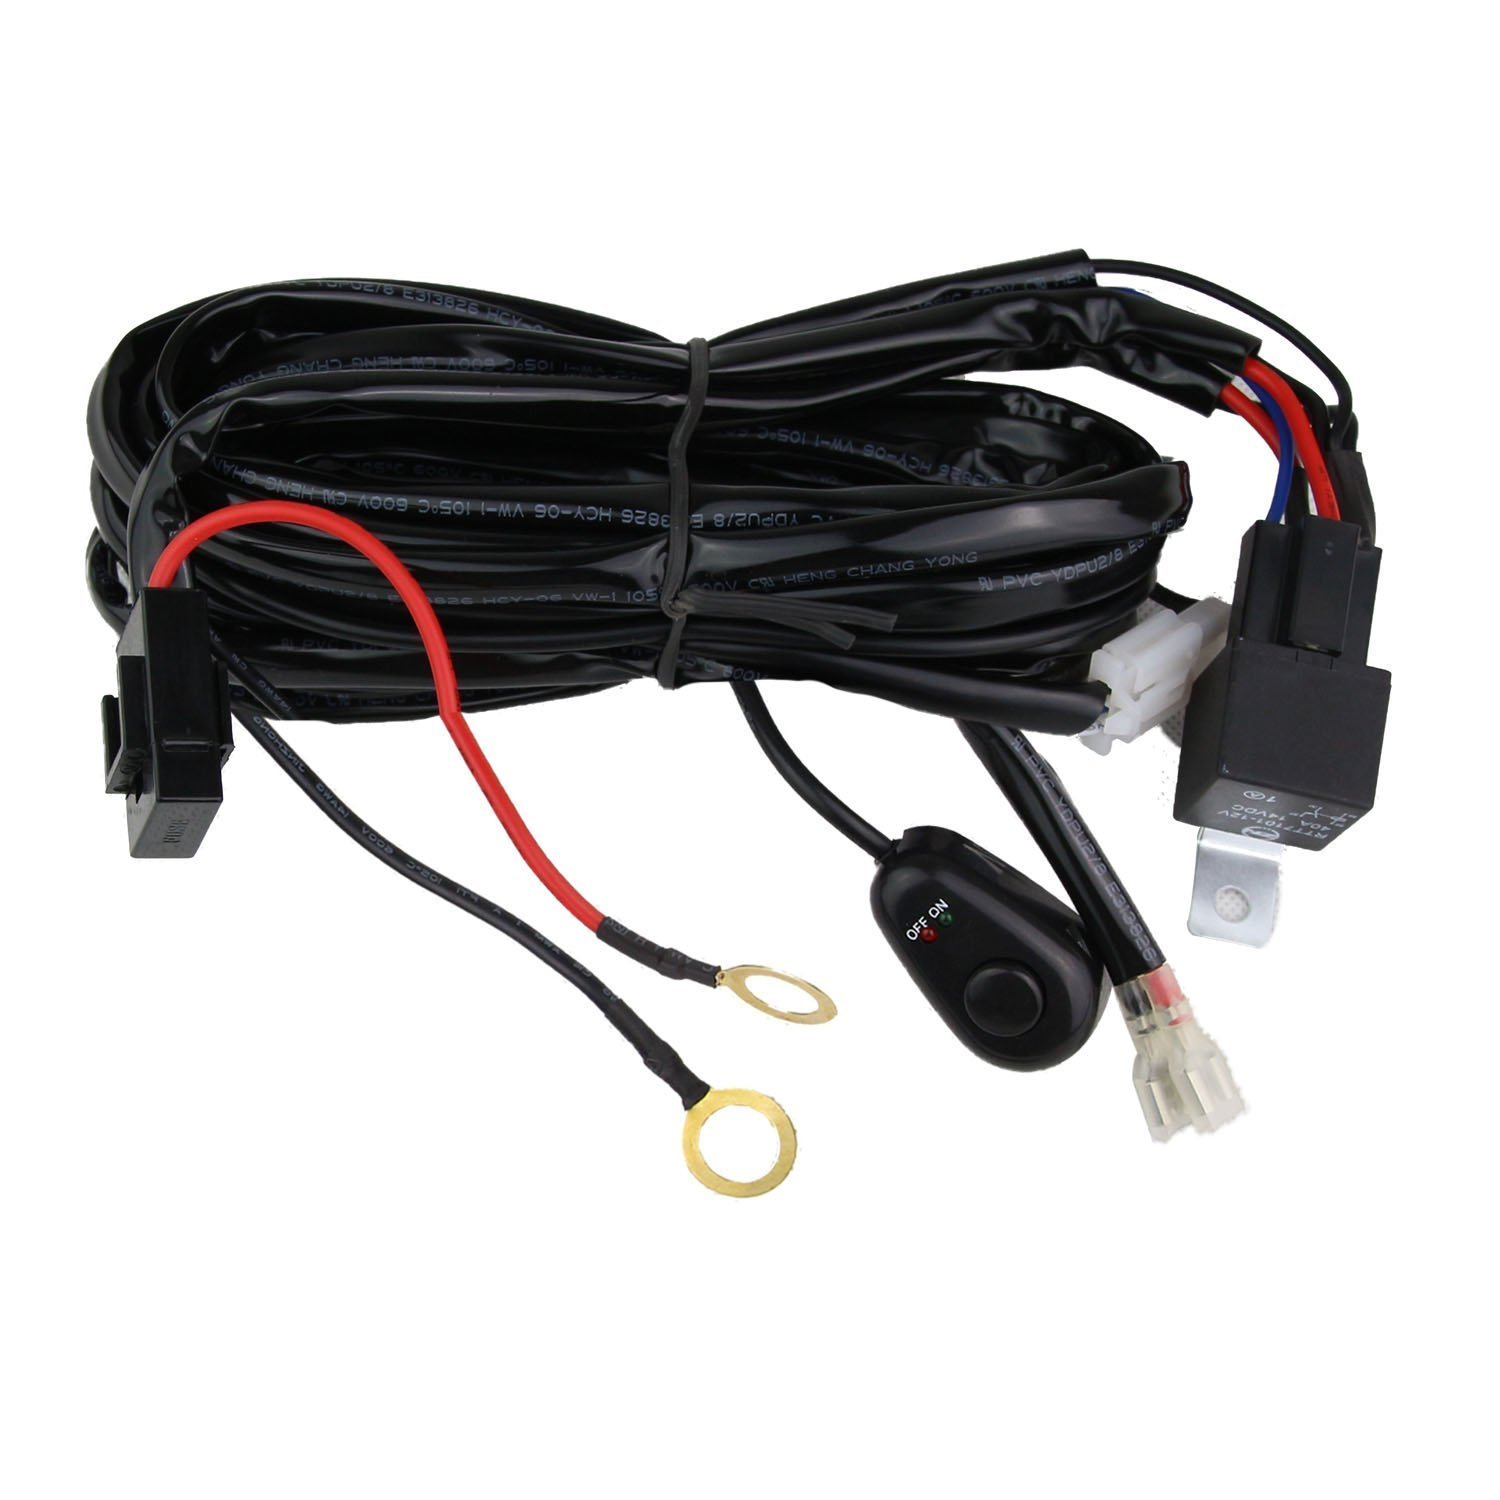 Amazon.com: Northpole Light LED Light Bar Wiring Harness, 12V 40A ...